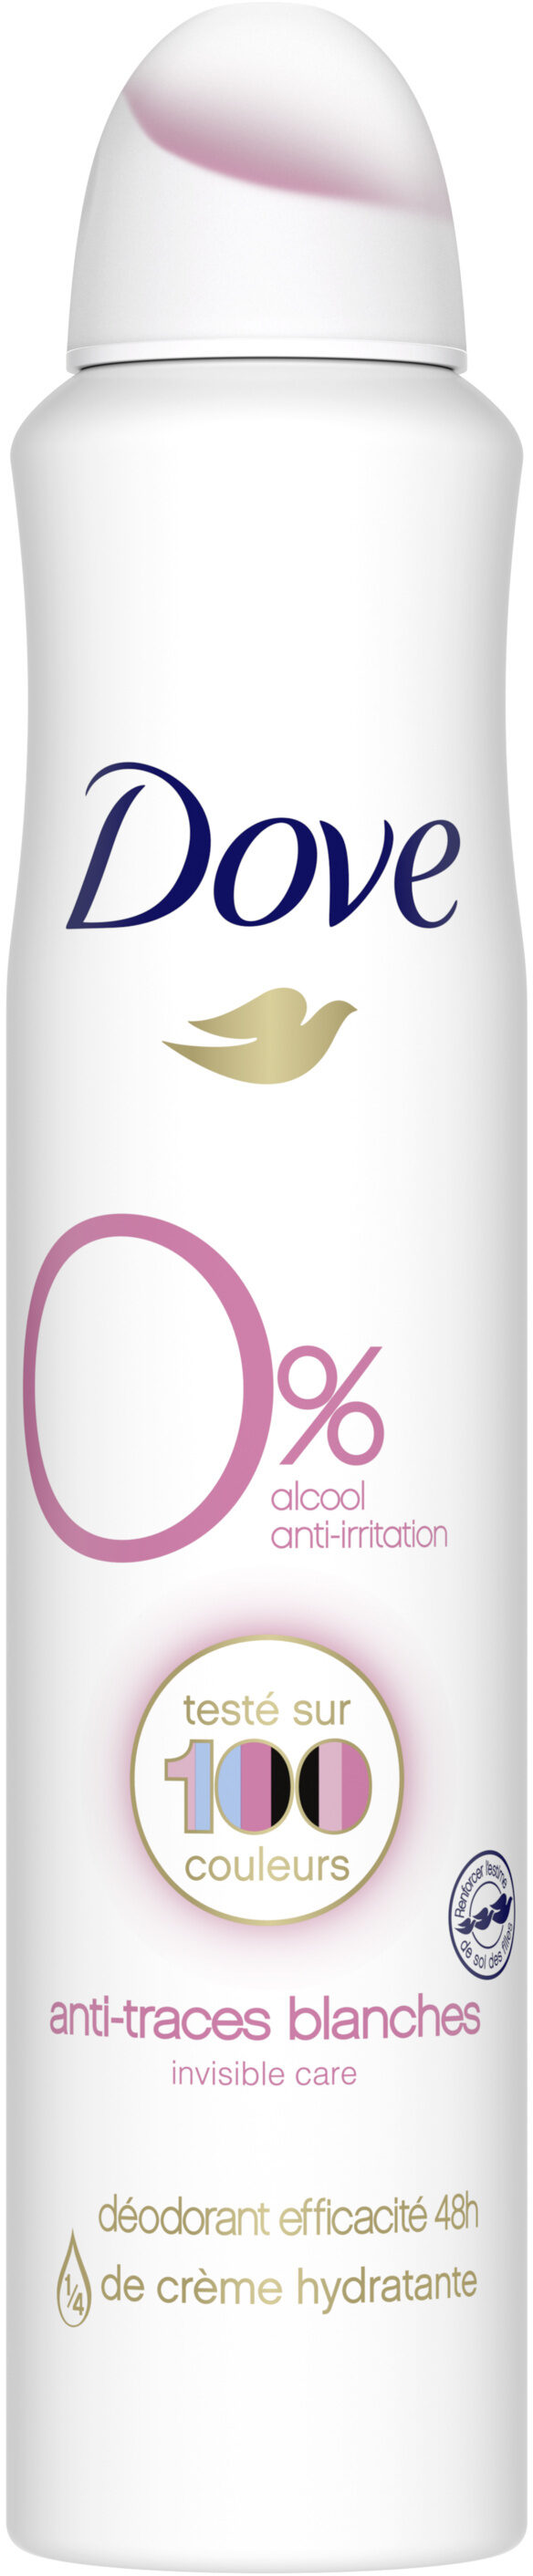 Dove 0% Déodorant Femme Spray Anti-irritation Invisible Care - Product - fr